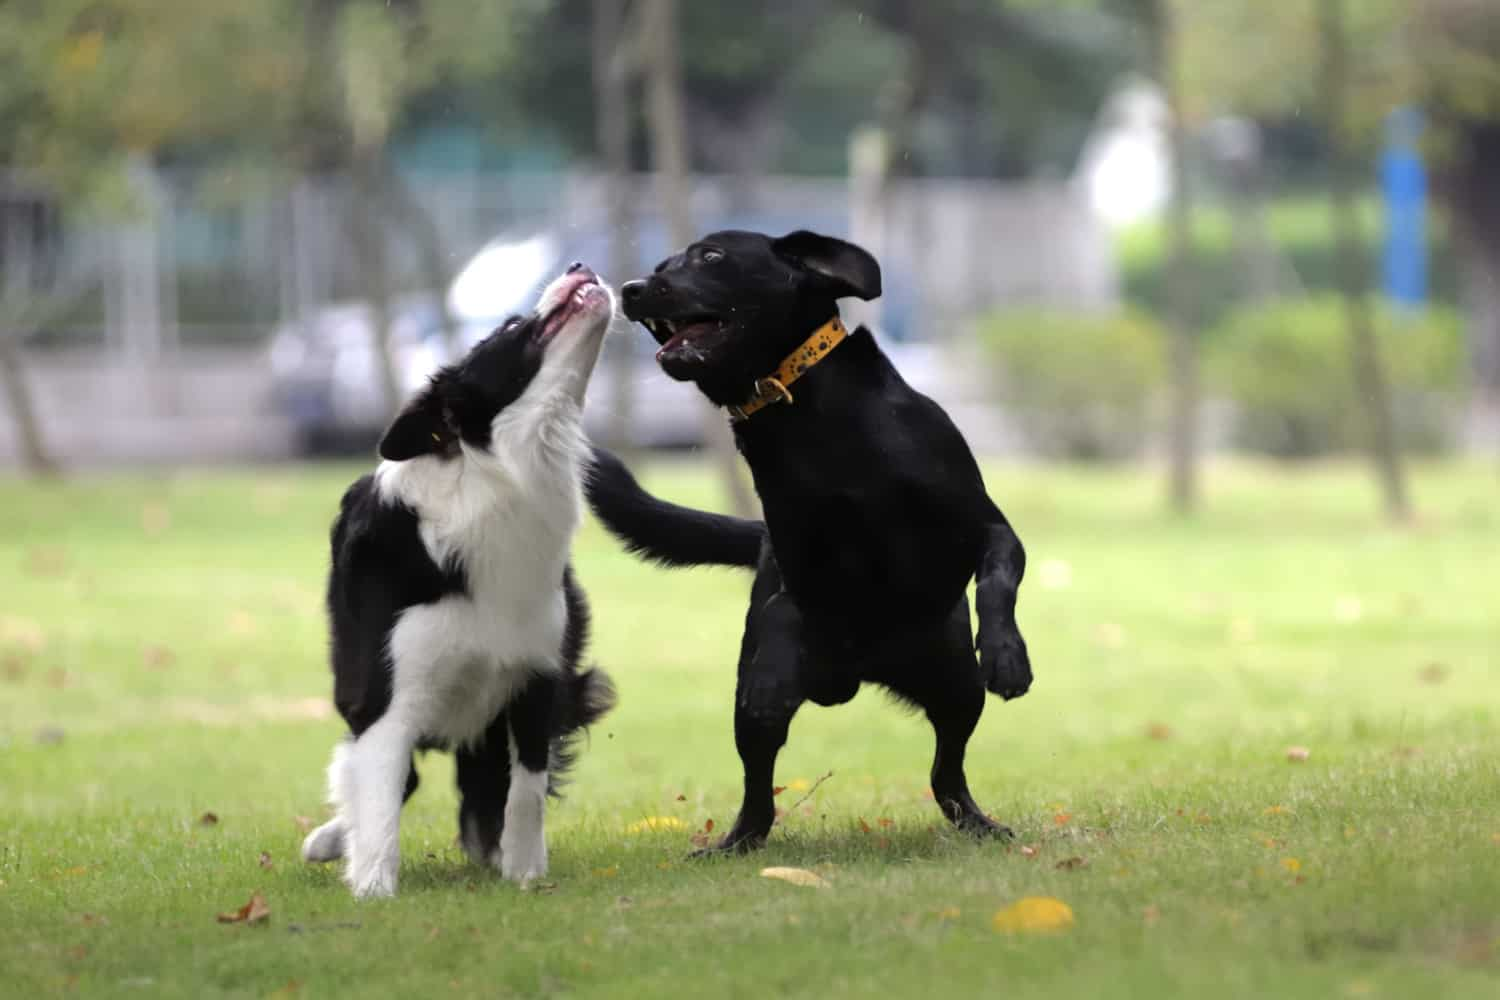 Two dogs playing together in a dog park